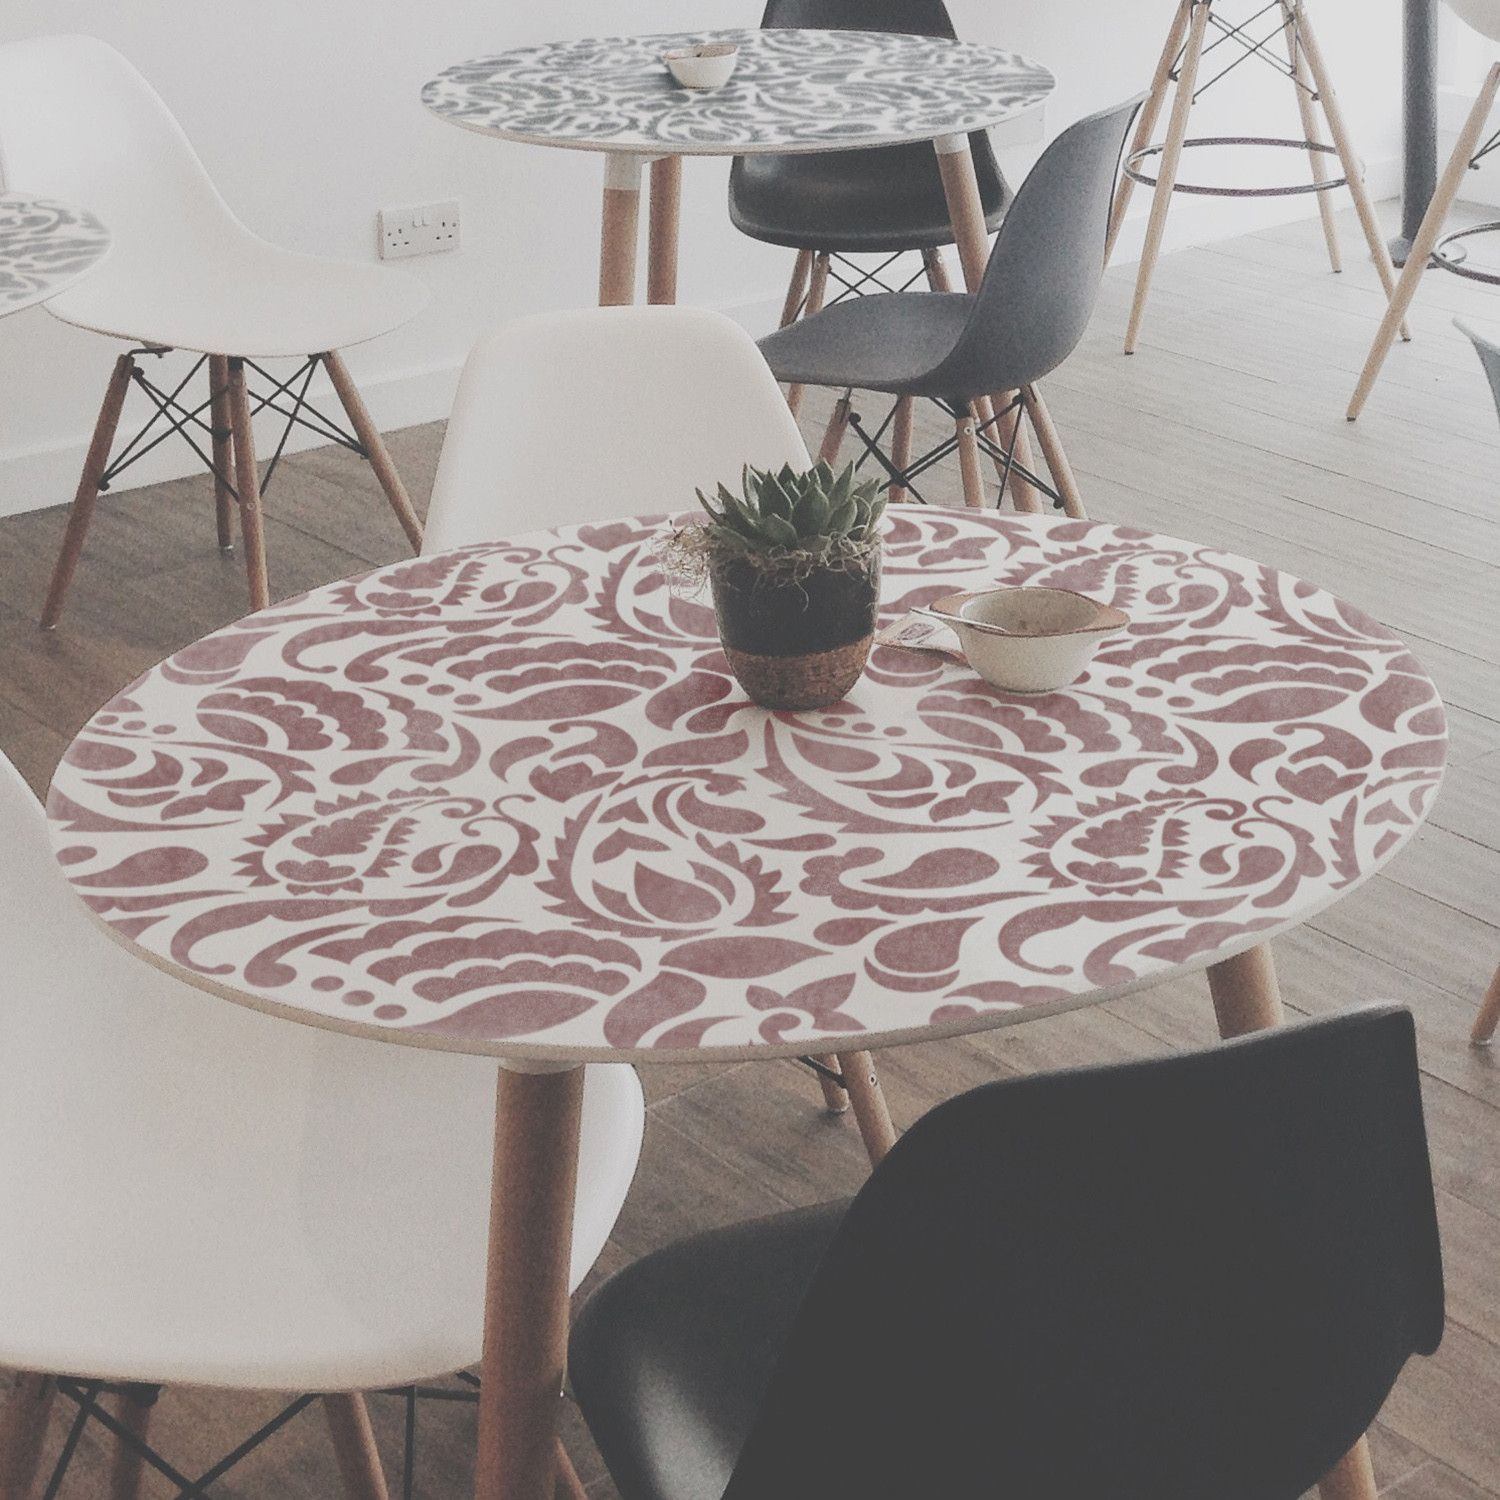 Paisley allover stencil pattern furniture stencil paisley paisley allover stencil pattern furniture stencil paisley reusable wall stencils for diy decor amipublicfo Image collections